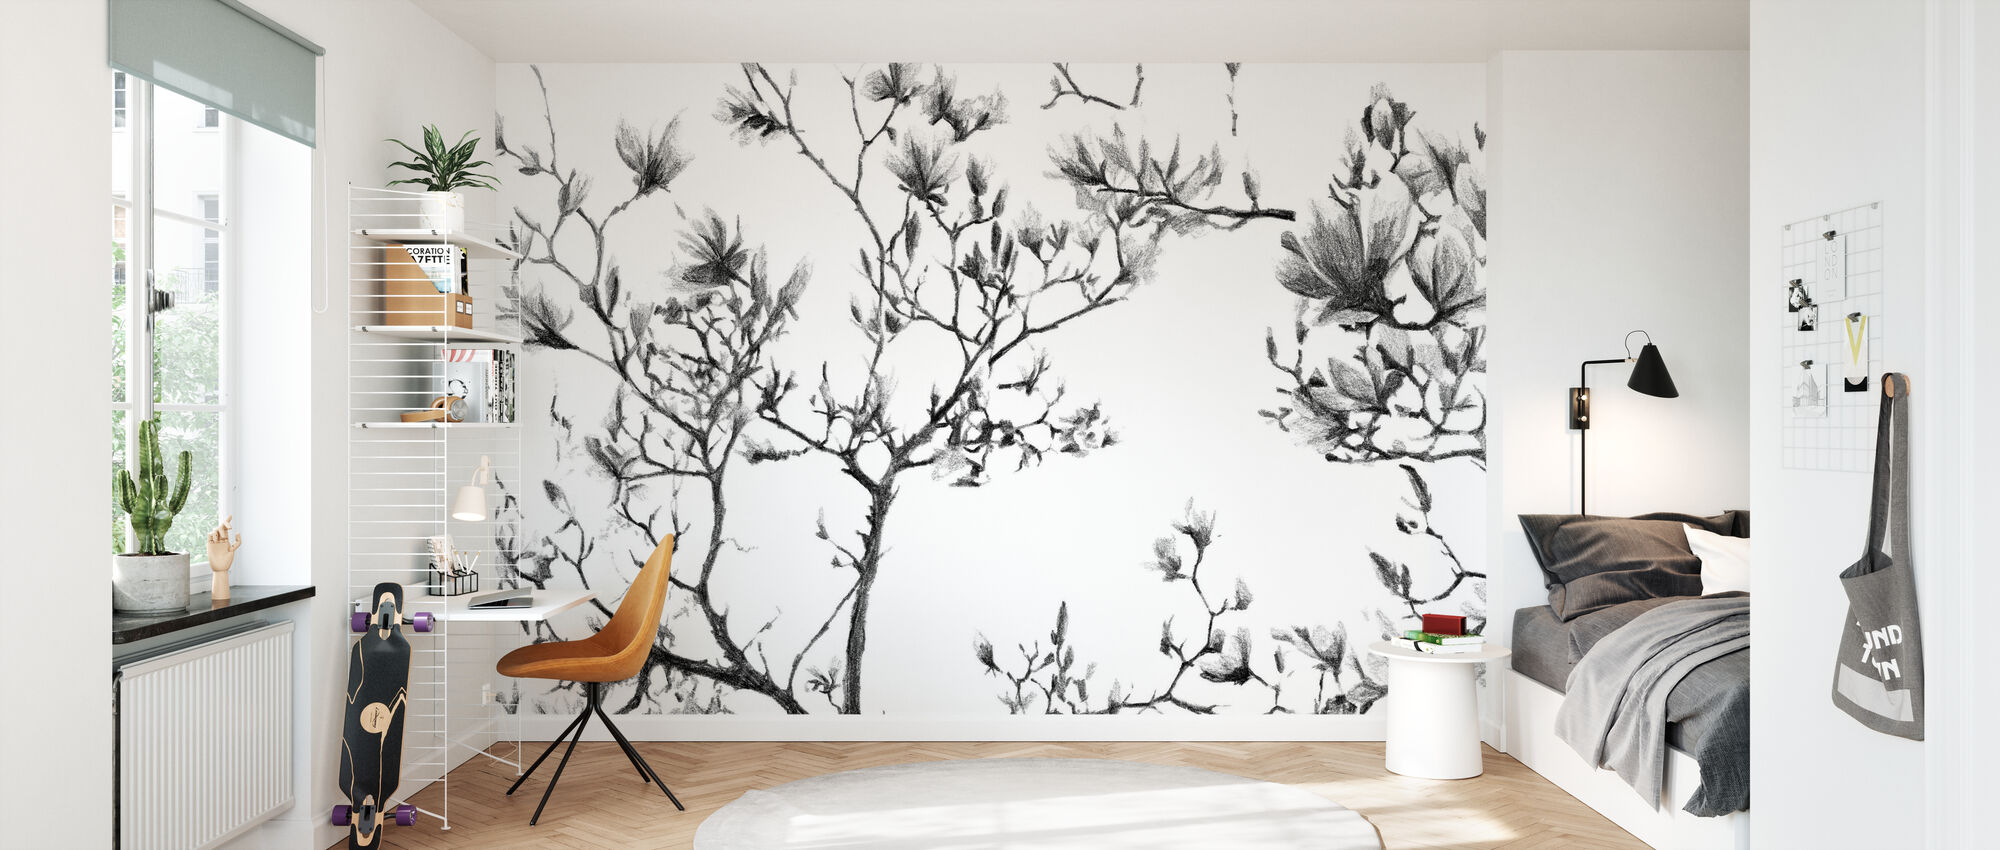 Magnolia Sketch - Wallpaper - Kids Room